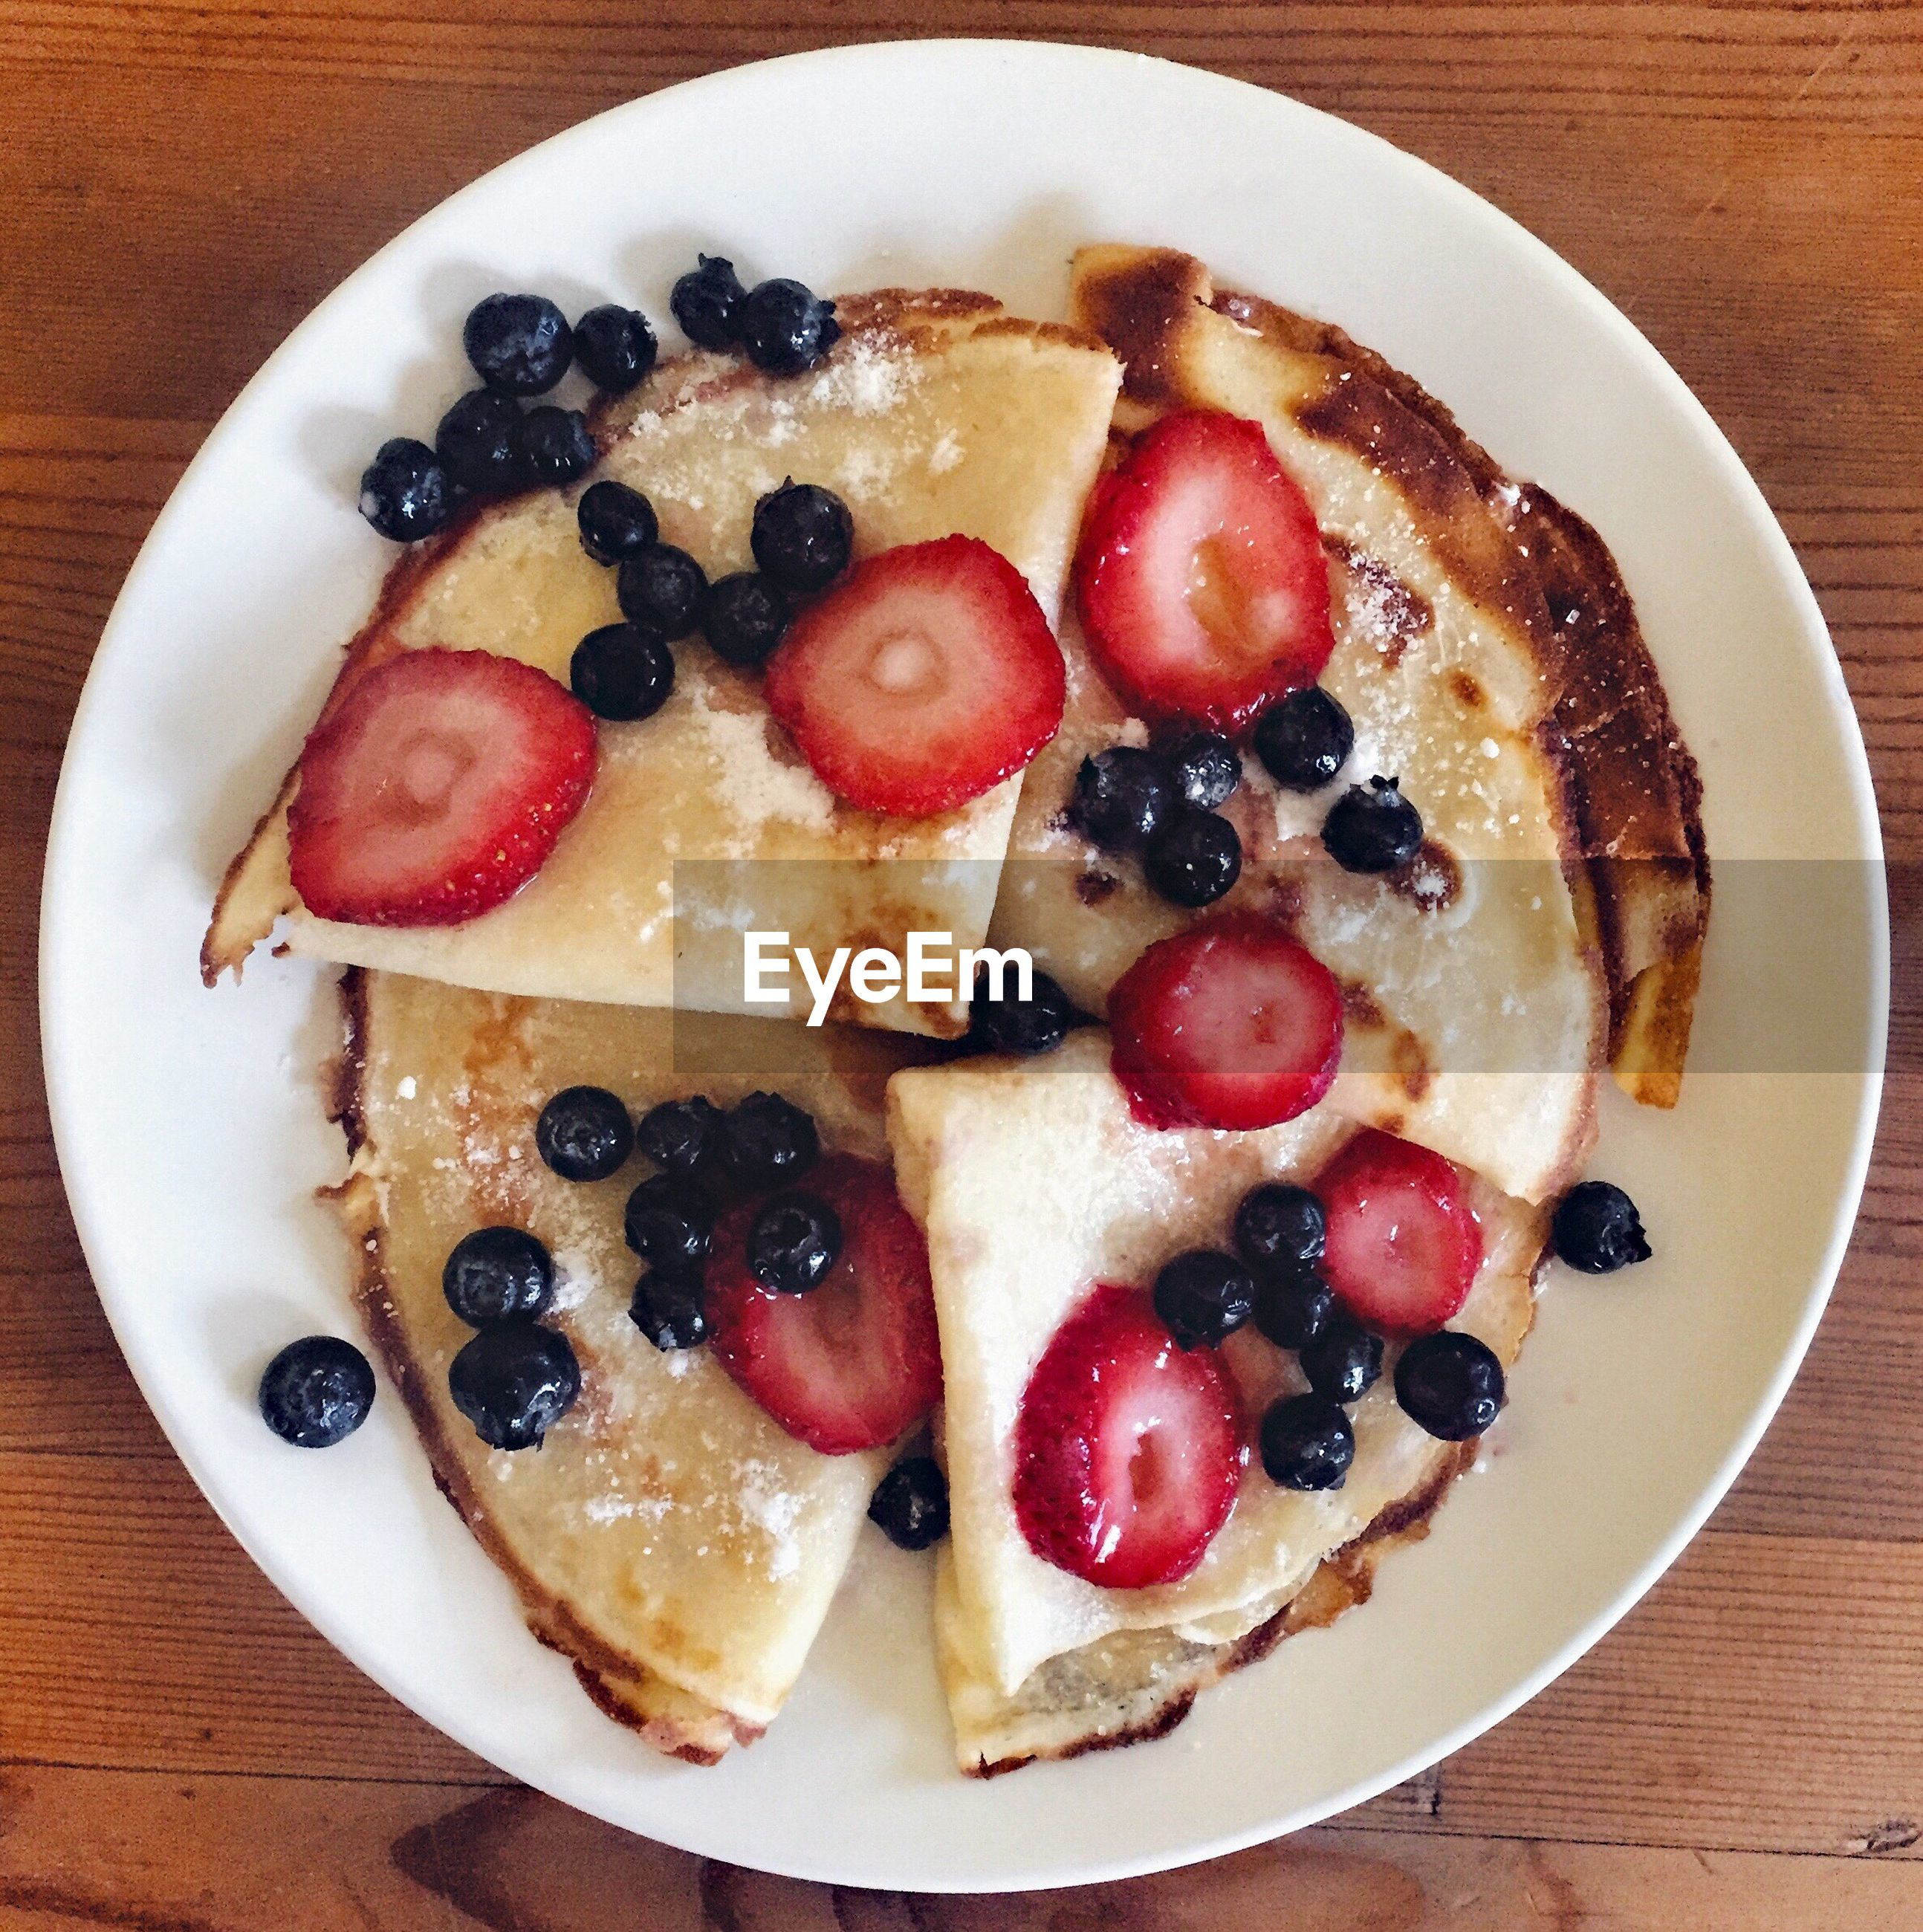 Directly above shot of pancakes served in plate on table